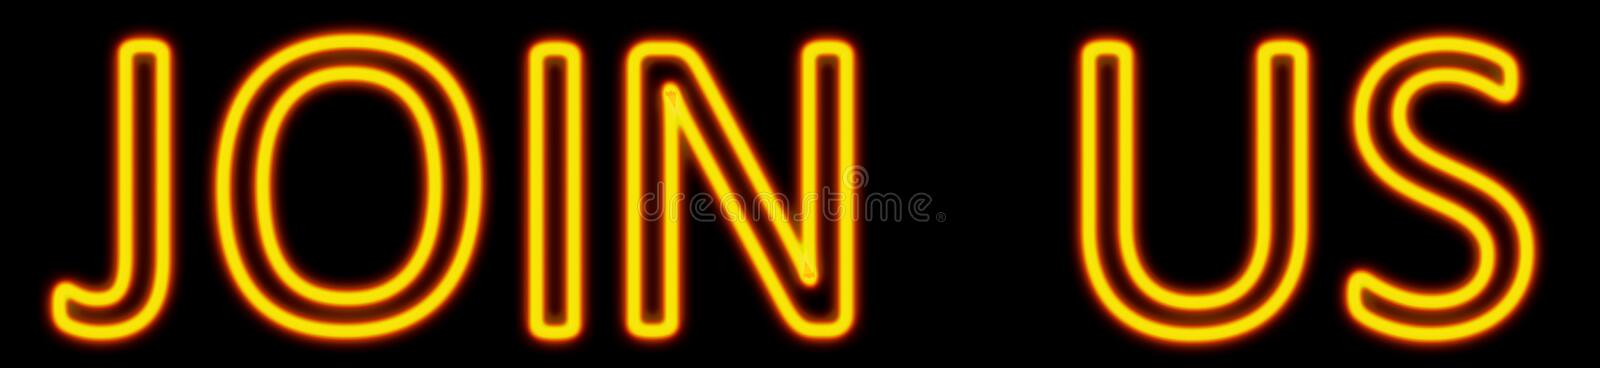 Join us neon sign stock illustration